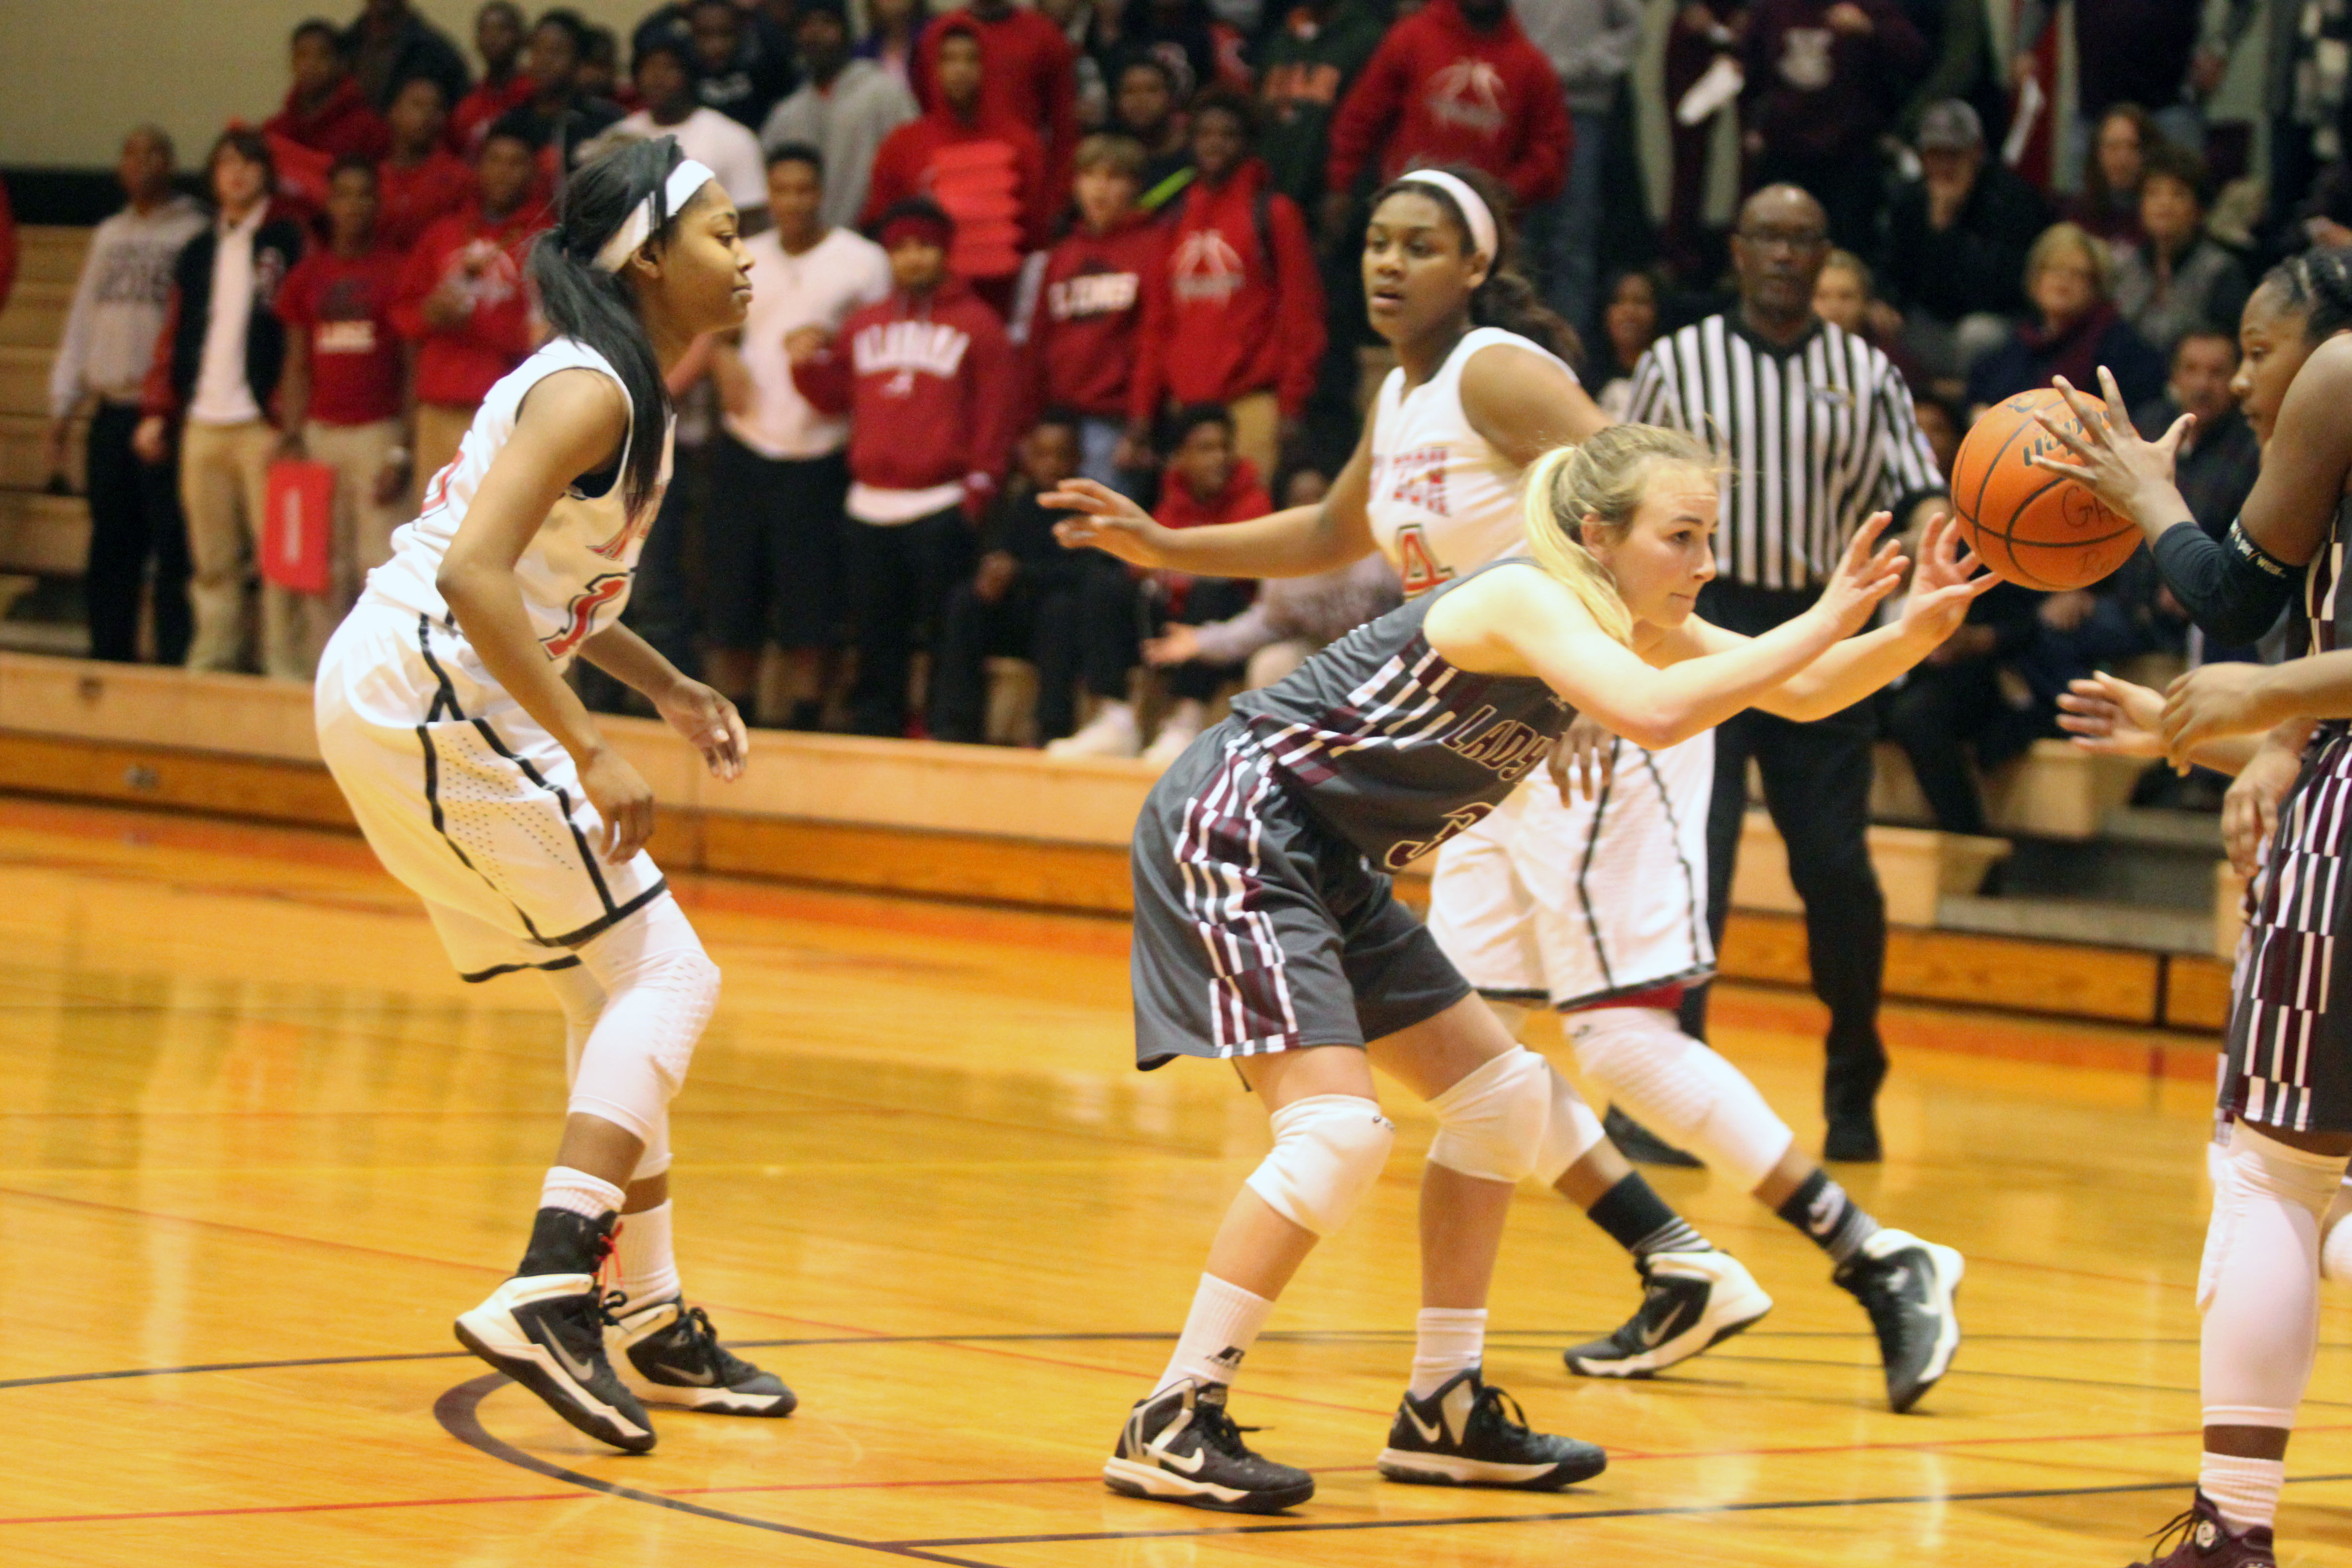 plain dealing single catholic girls Newman catholic girls basketball, wausau, wisconsin 205 likes 1 talking about this the official facebook page of wausau newman girls basketball.